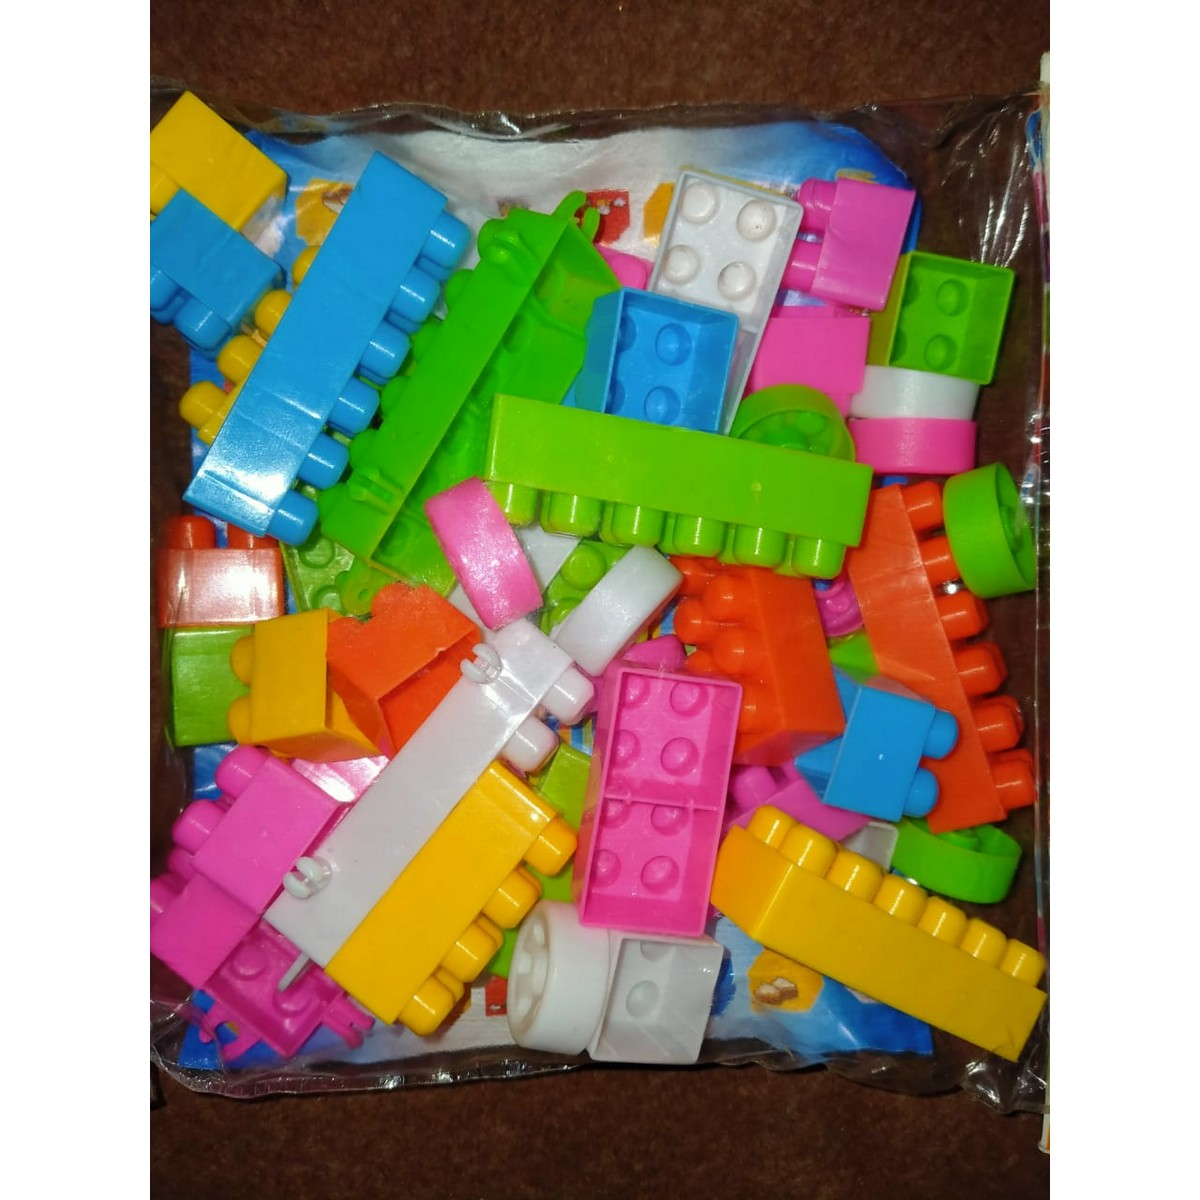 51 Pieces Building Blocks - Toys for Kids (Boys & Girls)